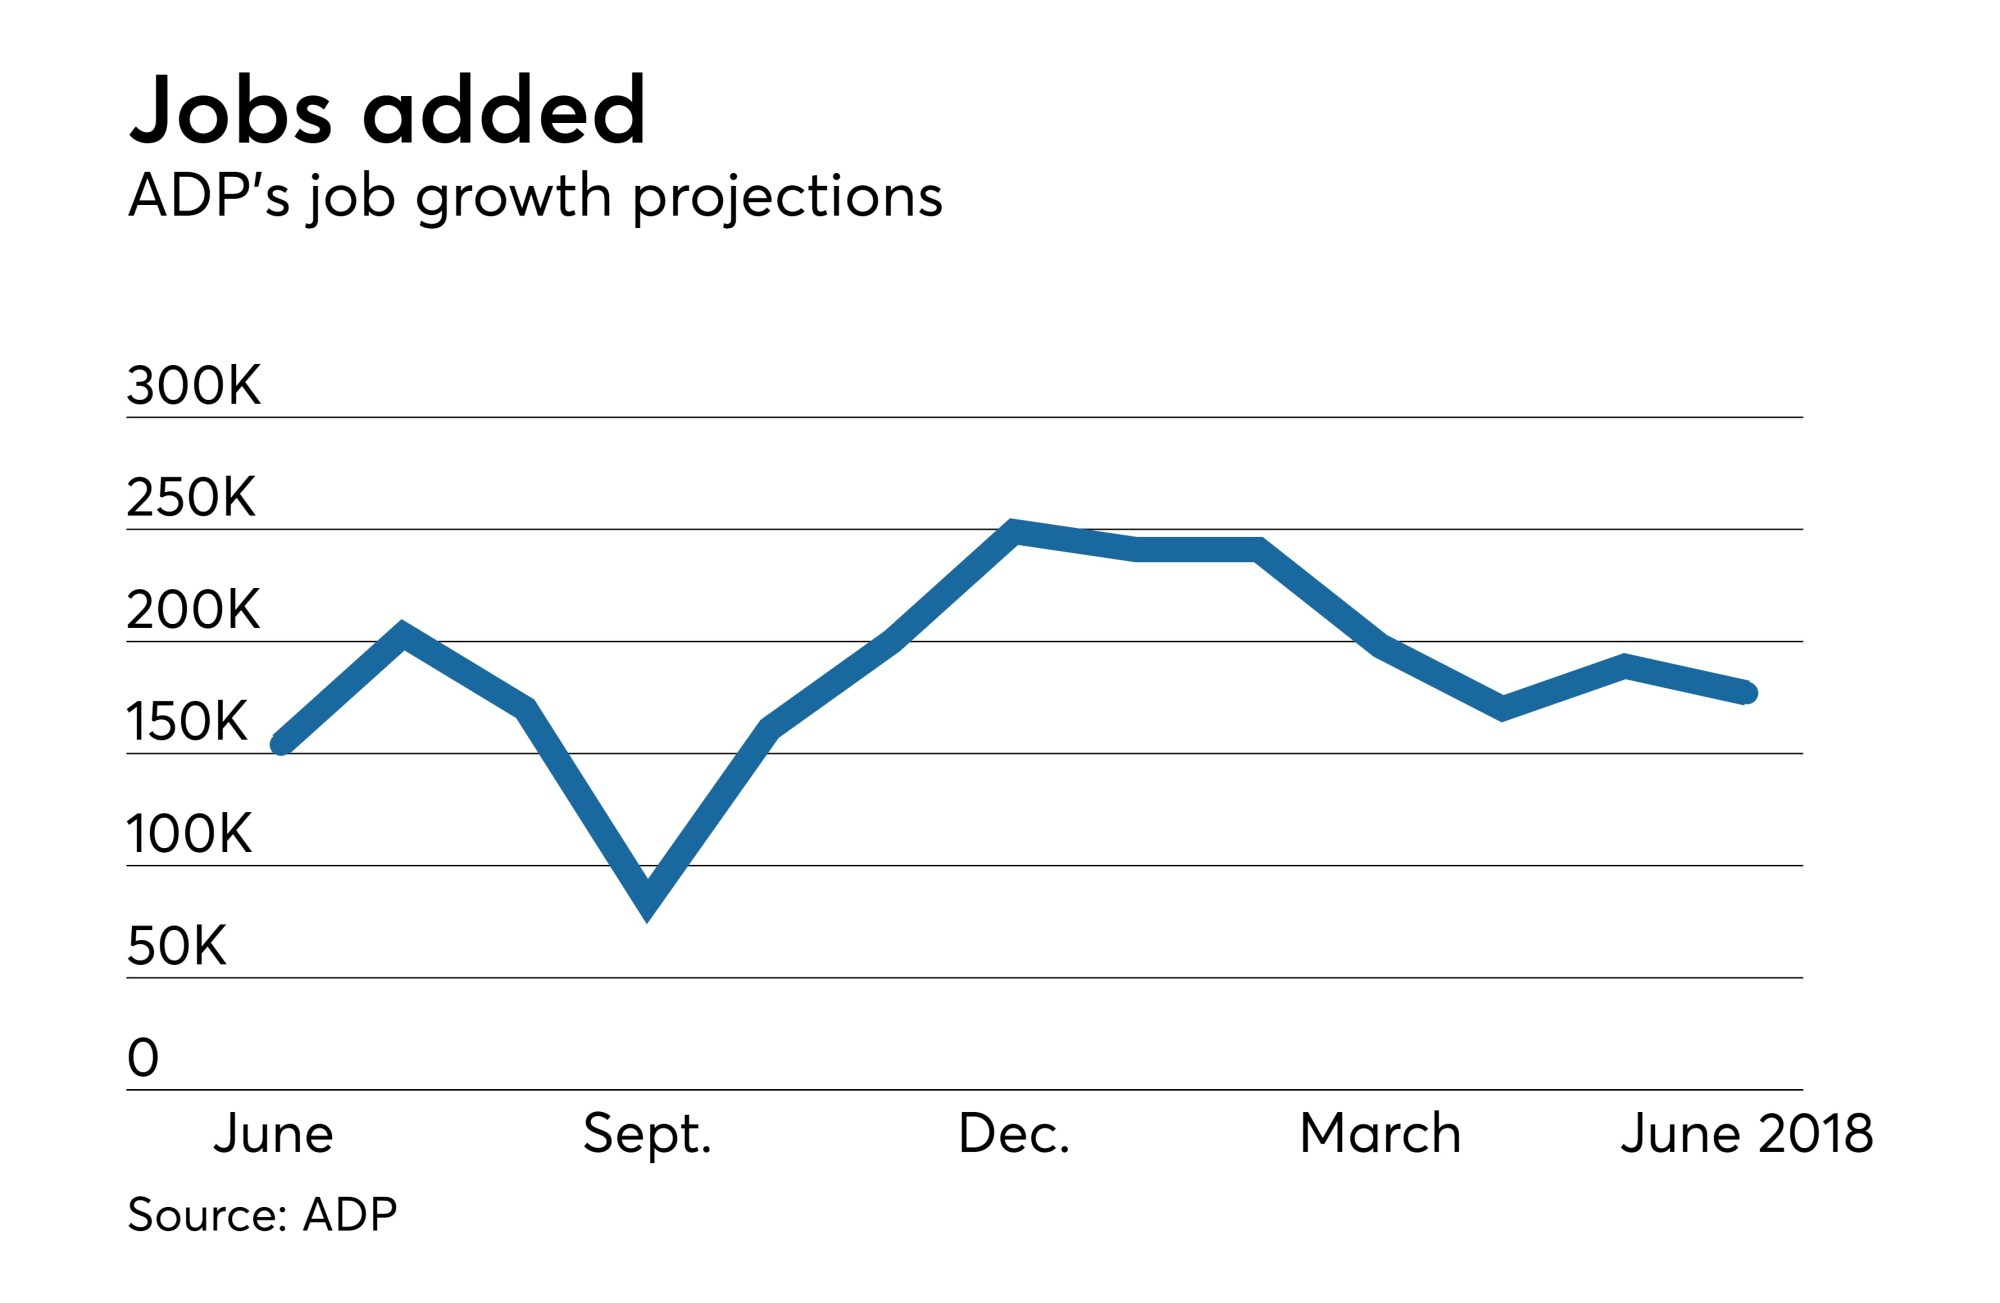 hight resolution of adp june jobs estimate below expectations tough to find qualified workers bond buyer